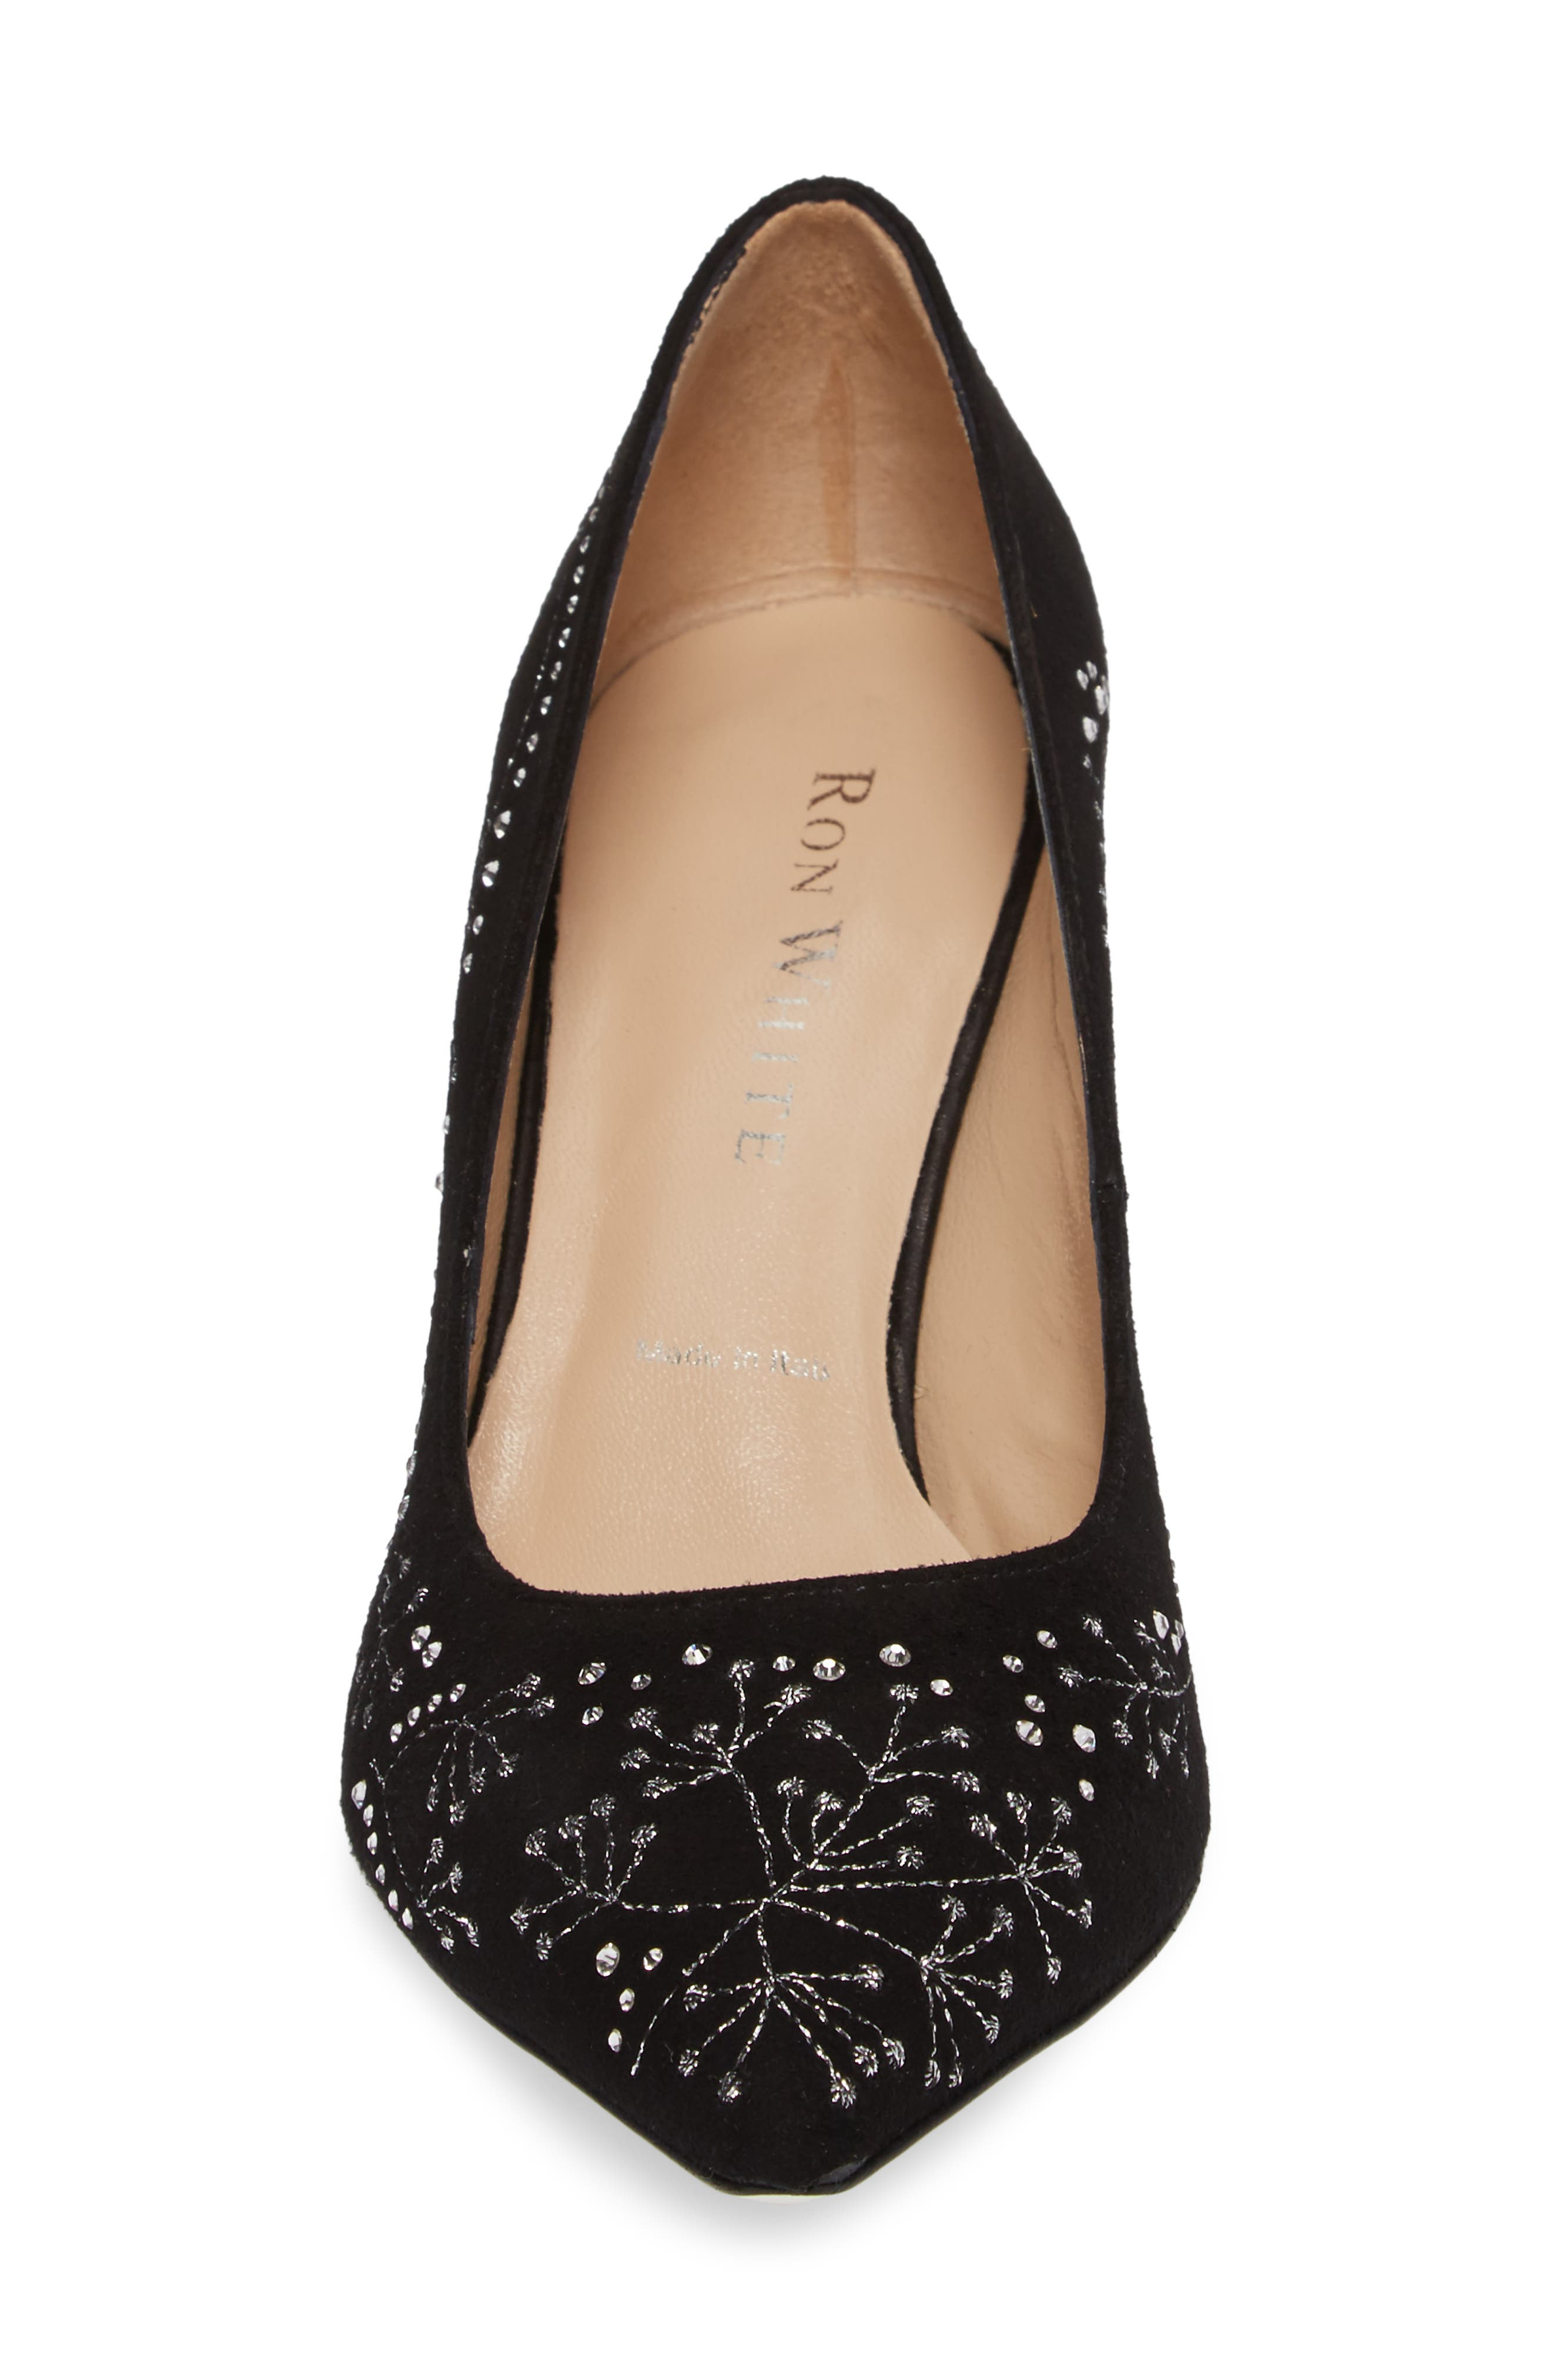 Carla Crystal Embellished Pump,                             Alternate thumbnail 4, color,                             Onyx Suede